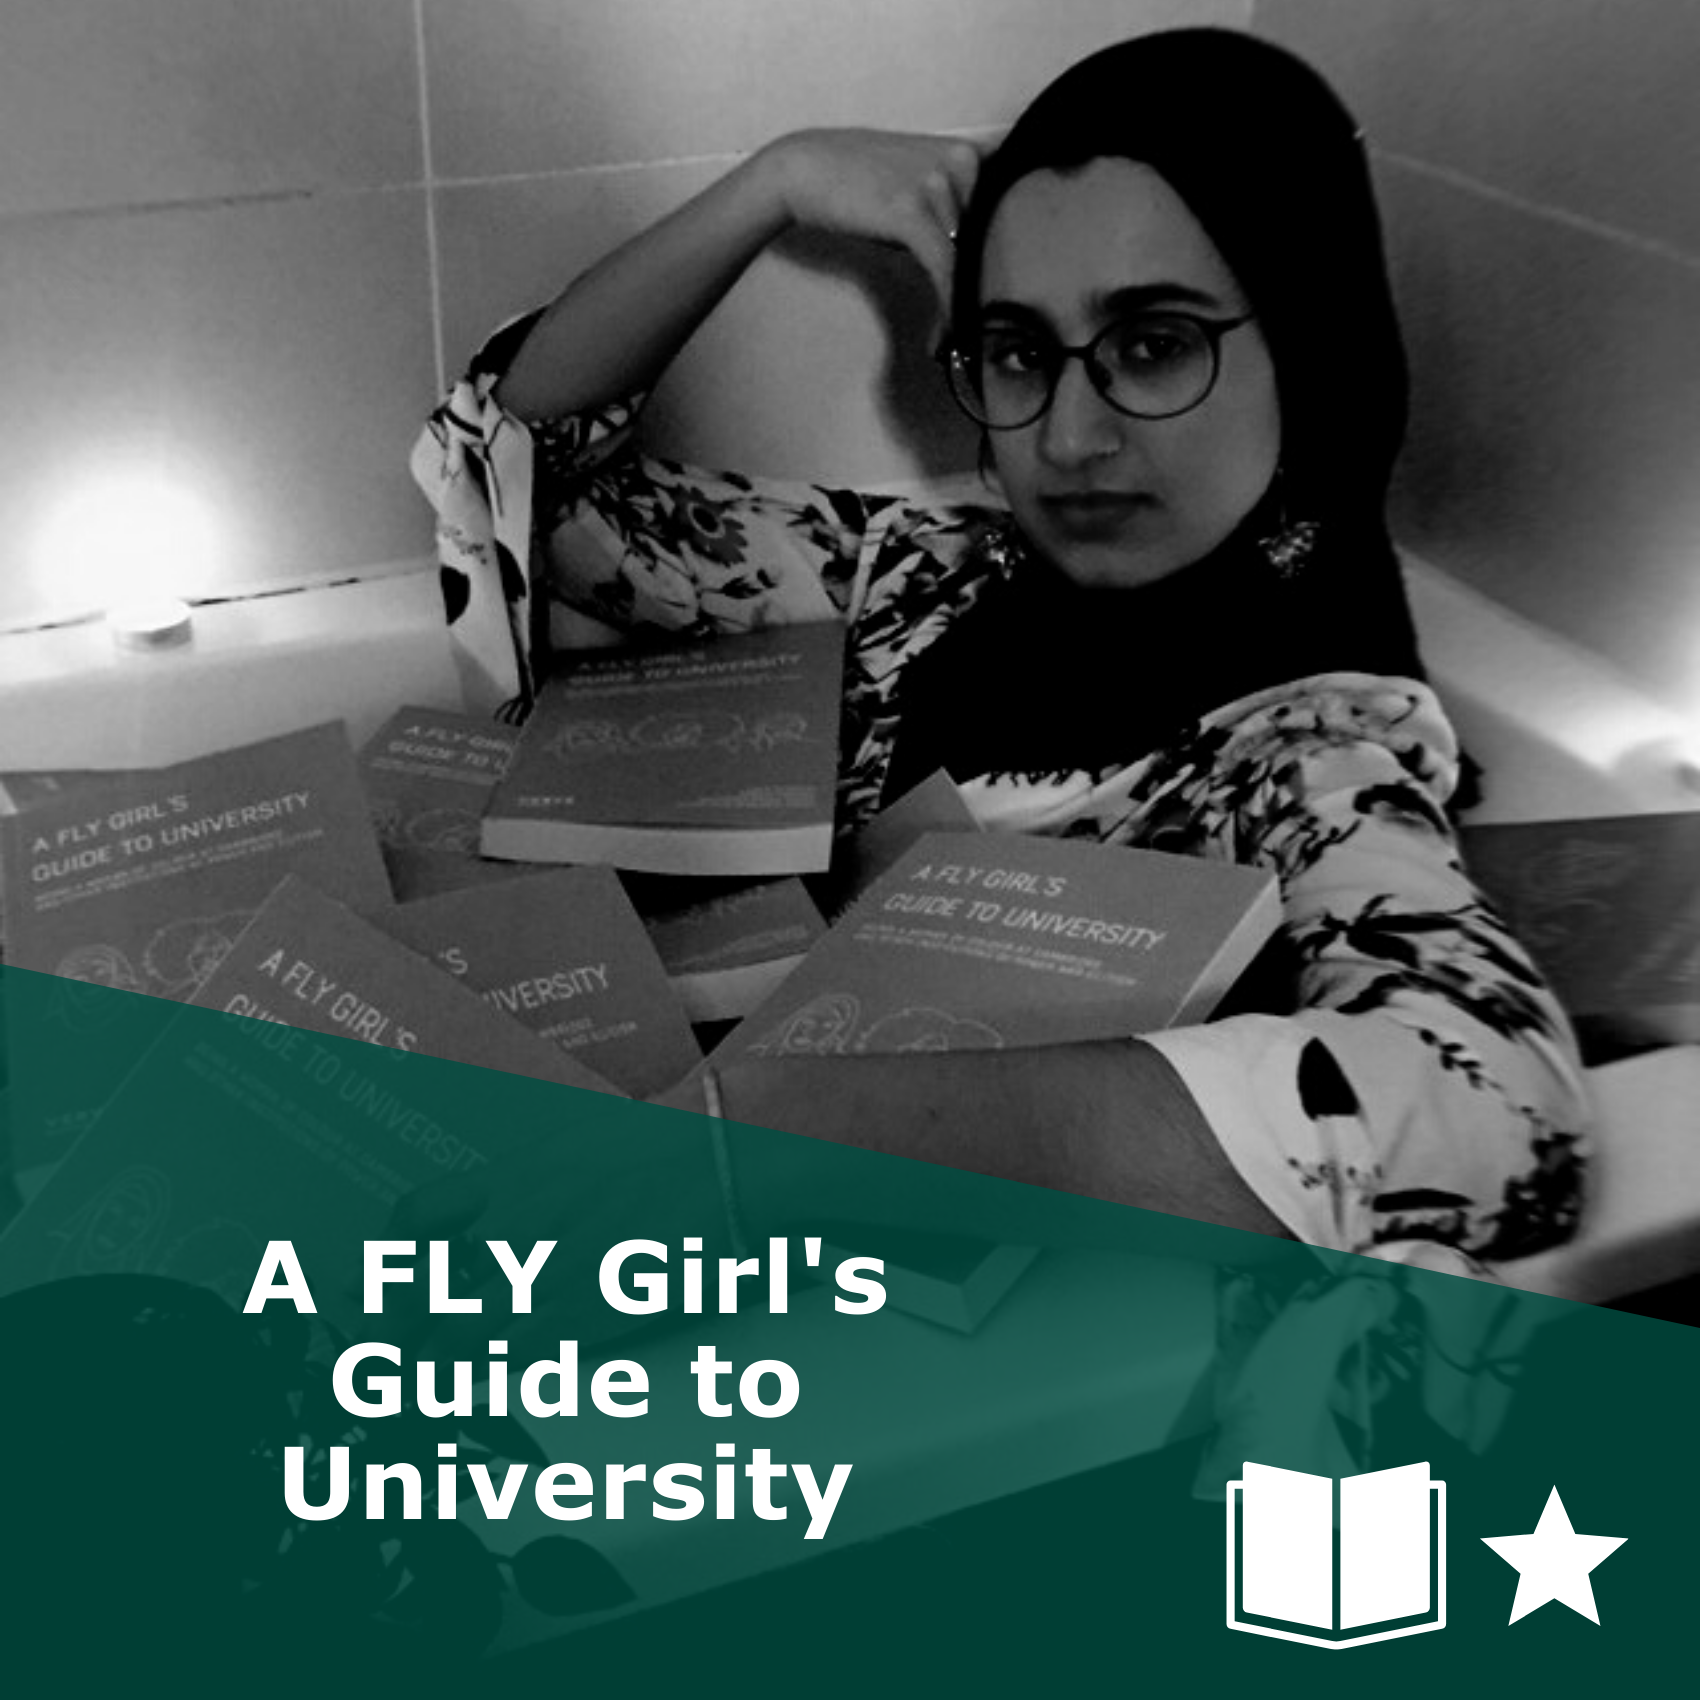 Picture of 'A FLY Girl's Guide to University'. It is a book, rated one star.